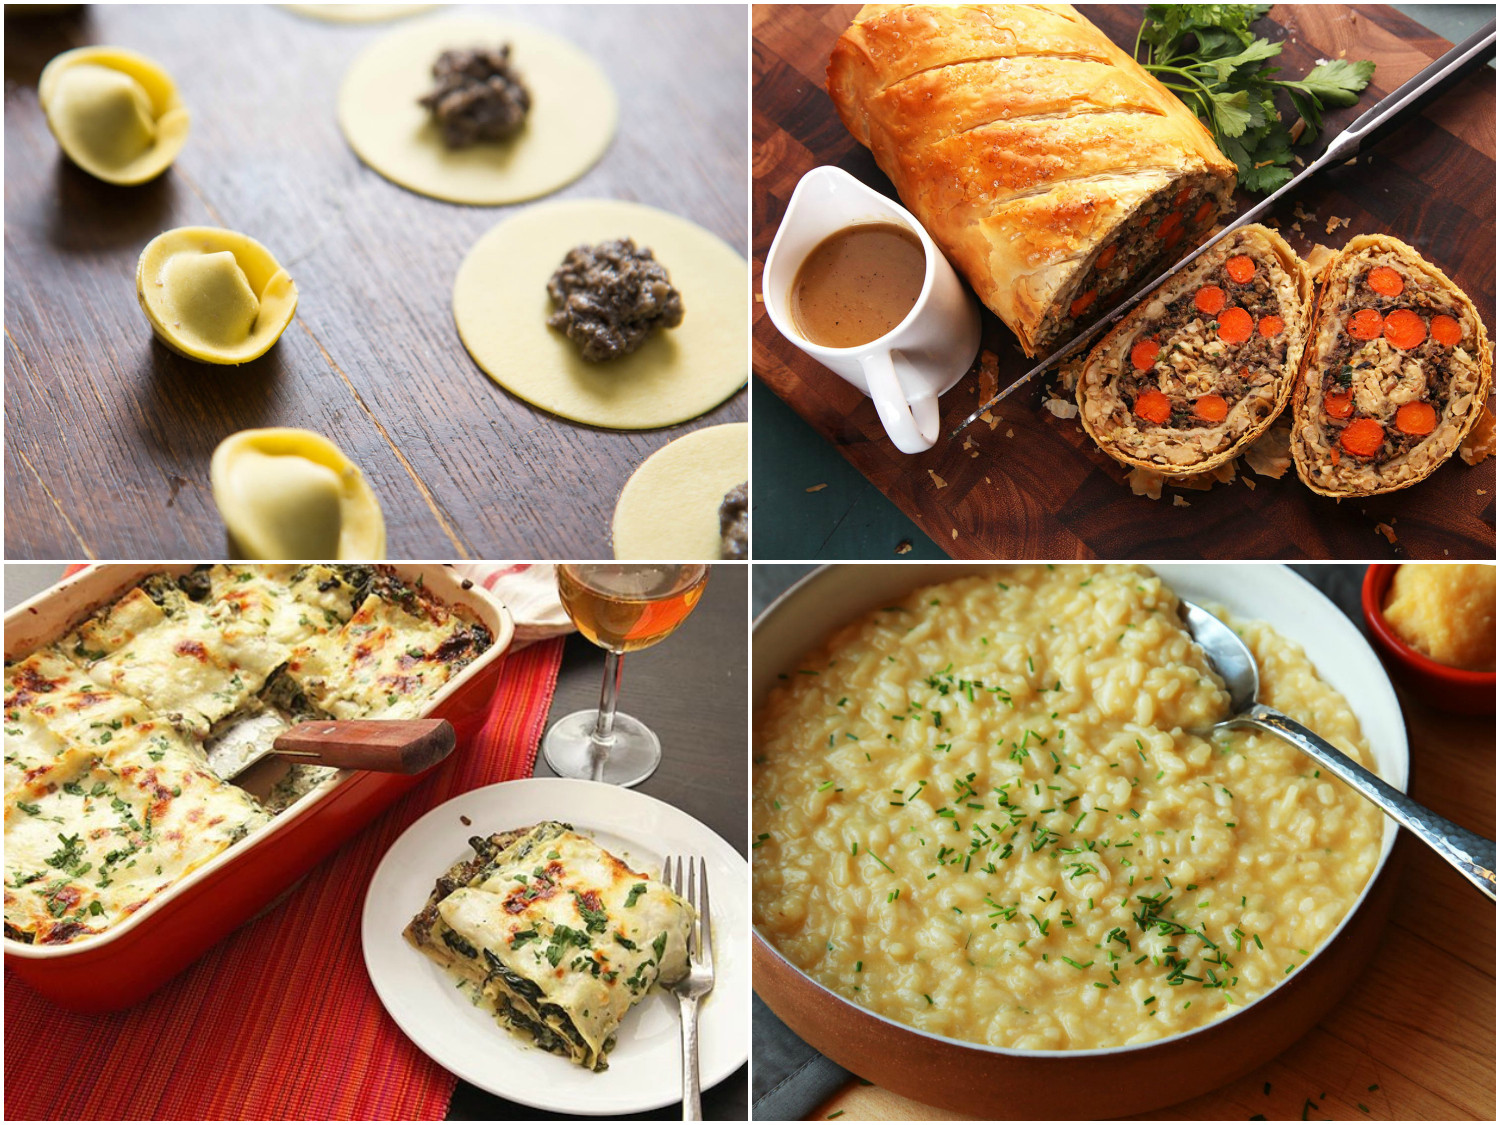 Vegetarian Main Dishes For Christmas  13 Festive Ve arian Main Dishes That Even Omnivores Will